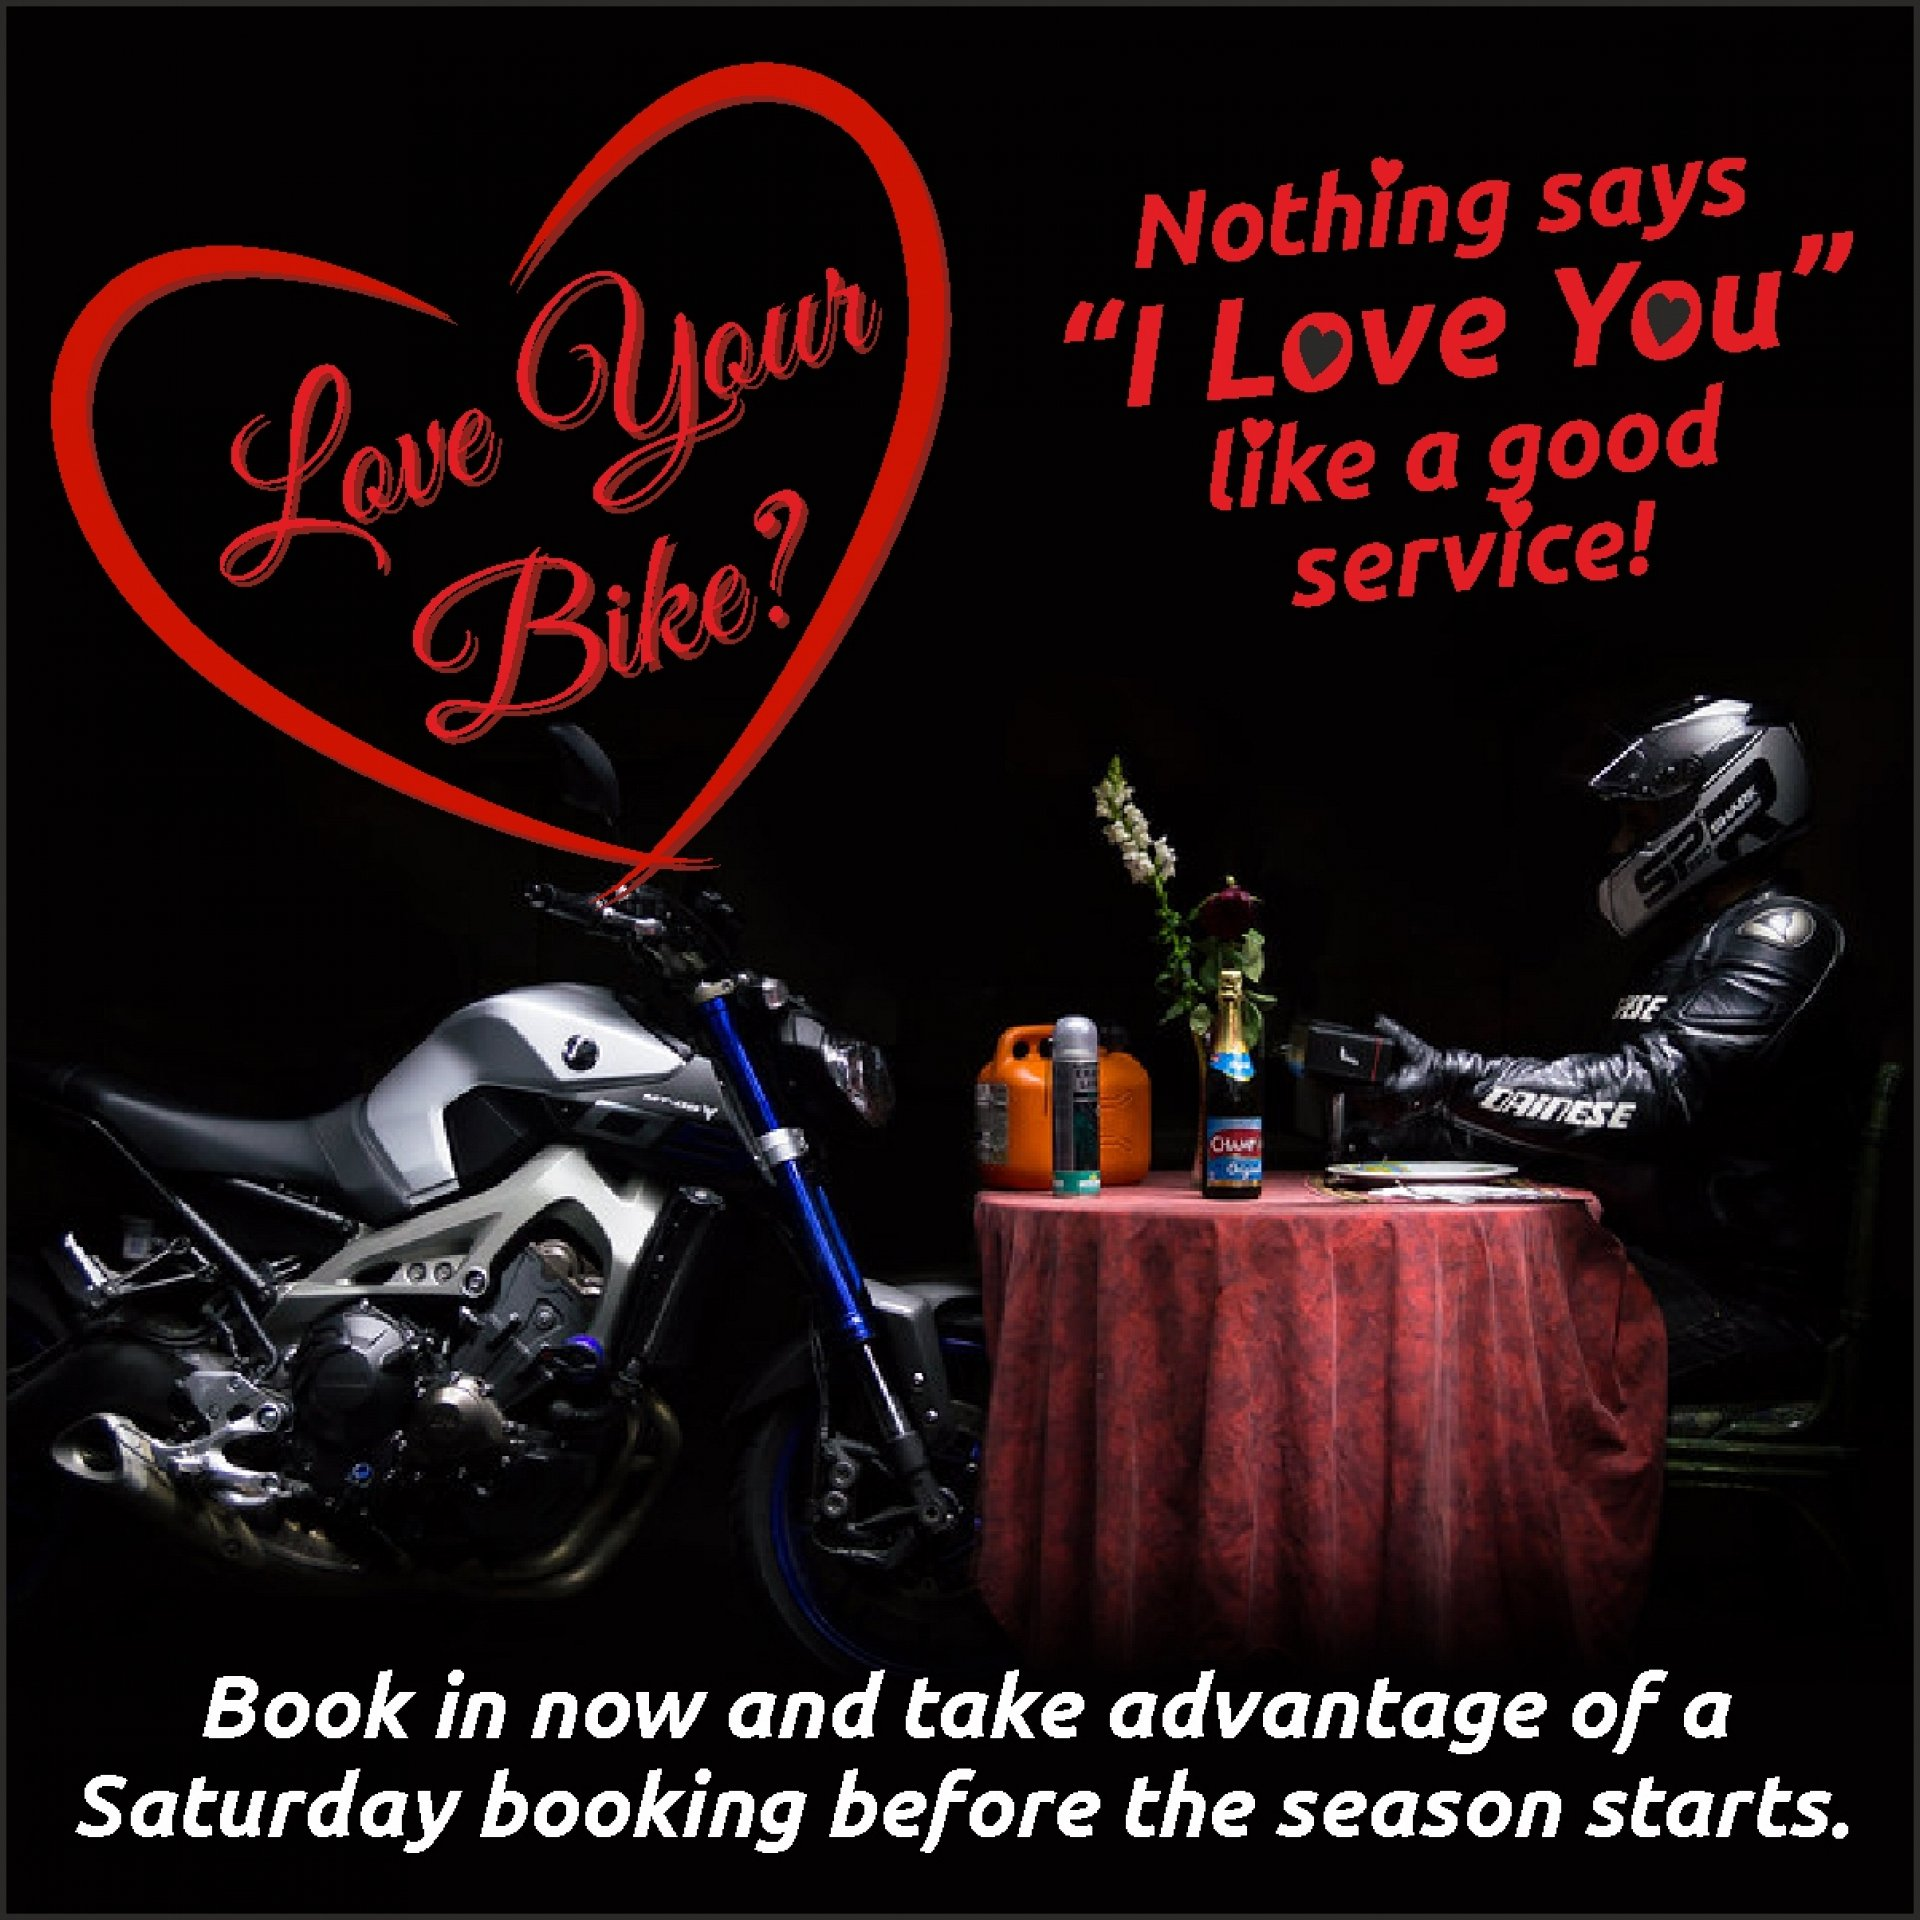 Nothing says I love you like a service on your bike!